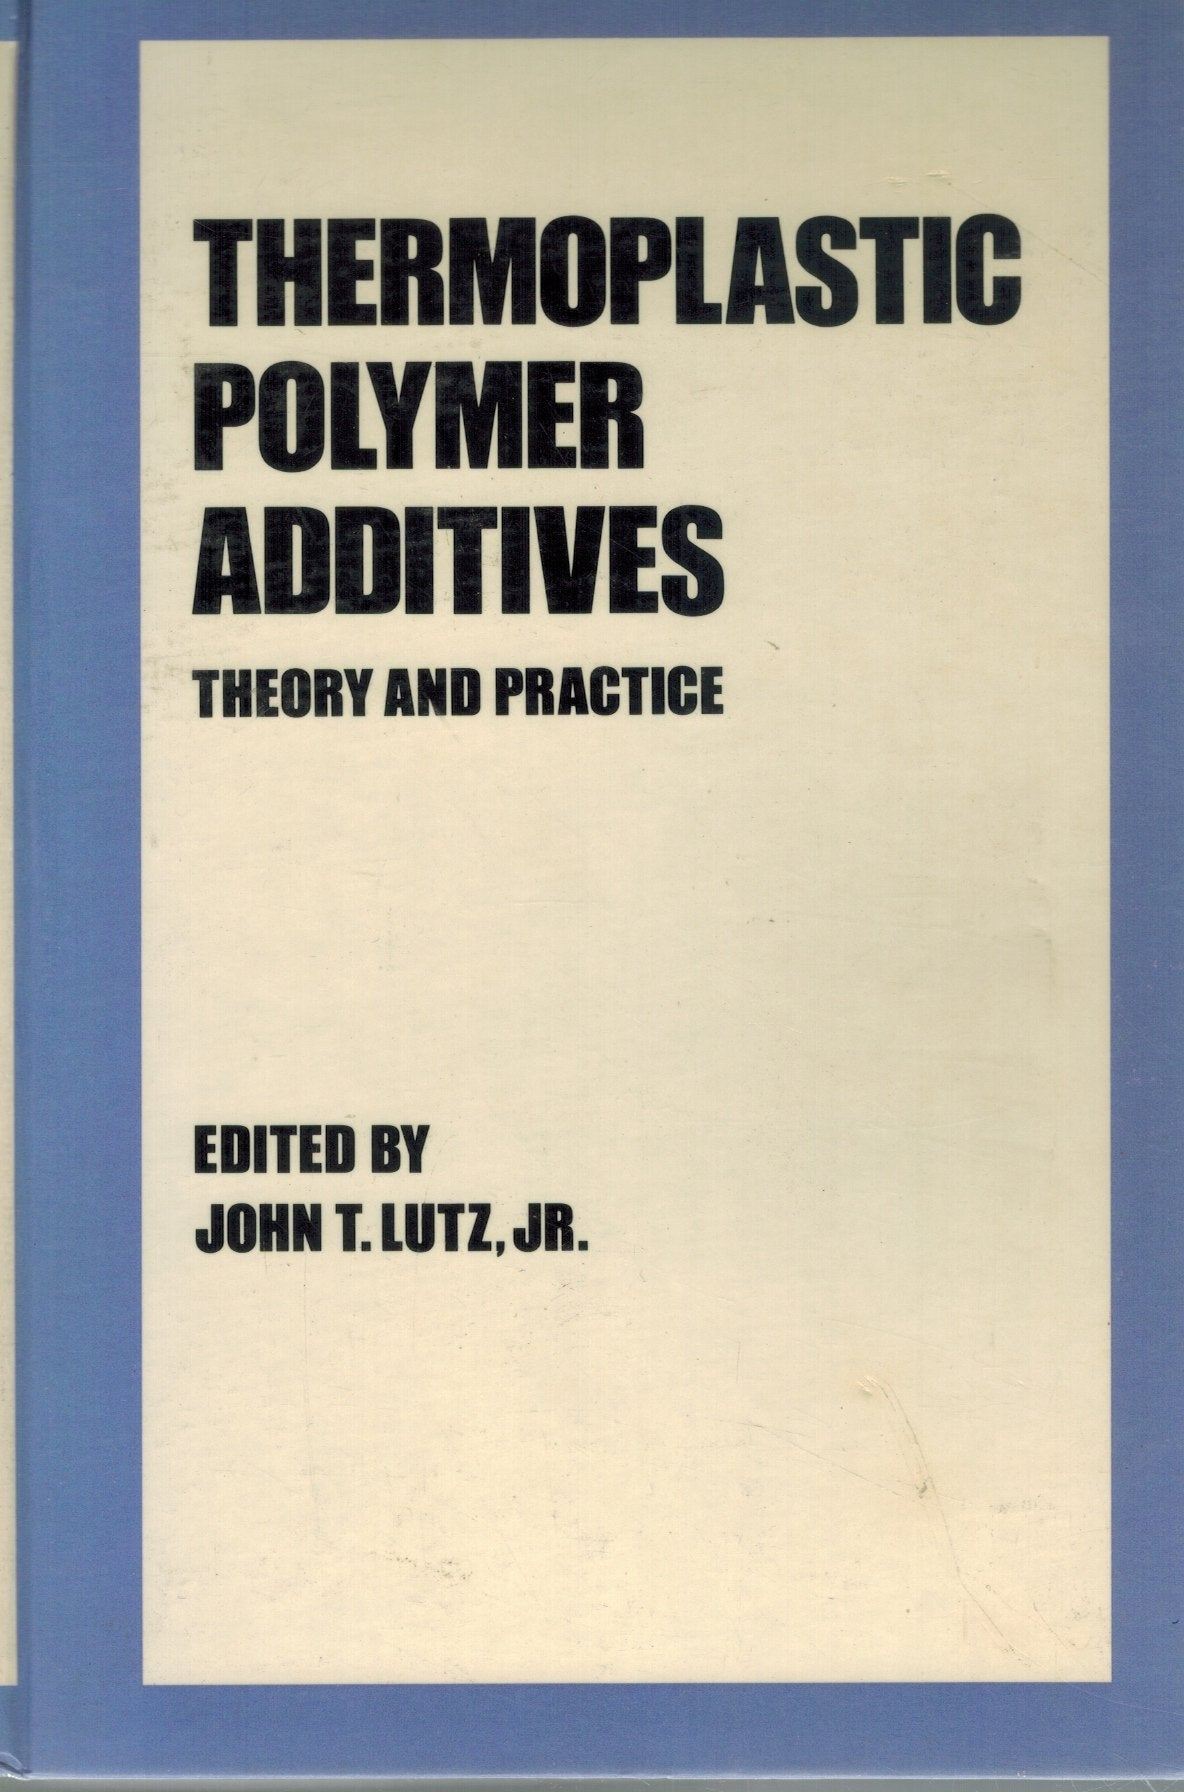 THERMOPLASTIC POLYMER ADDITIVES Theory and Practice  by Lutz, John T.